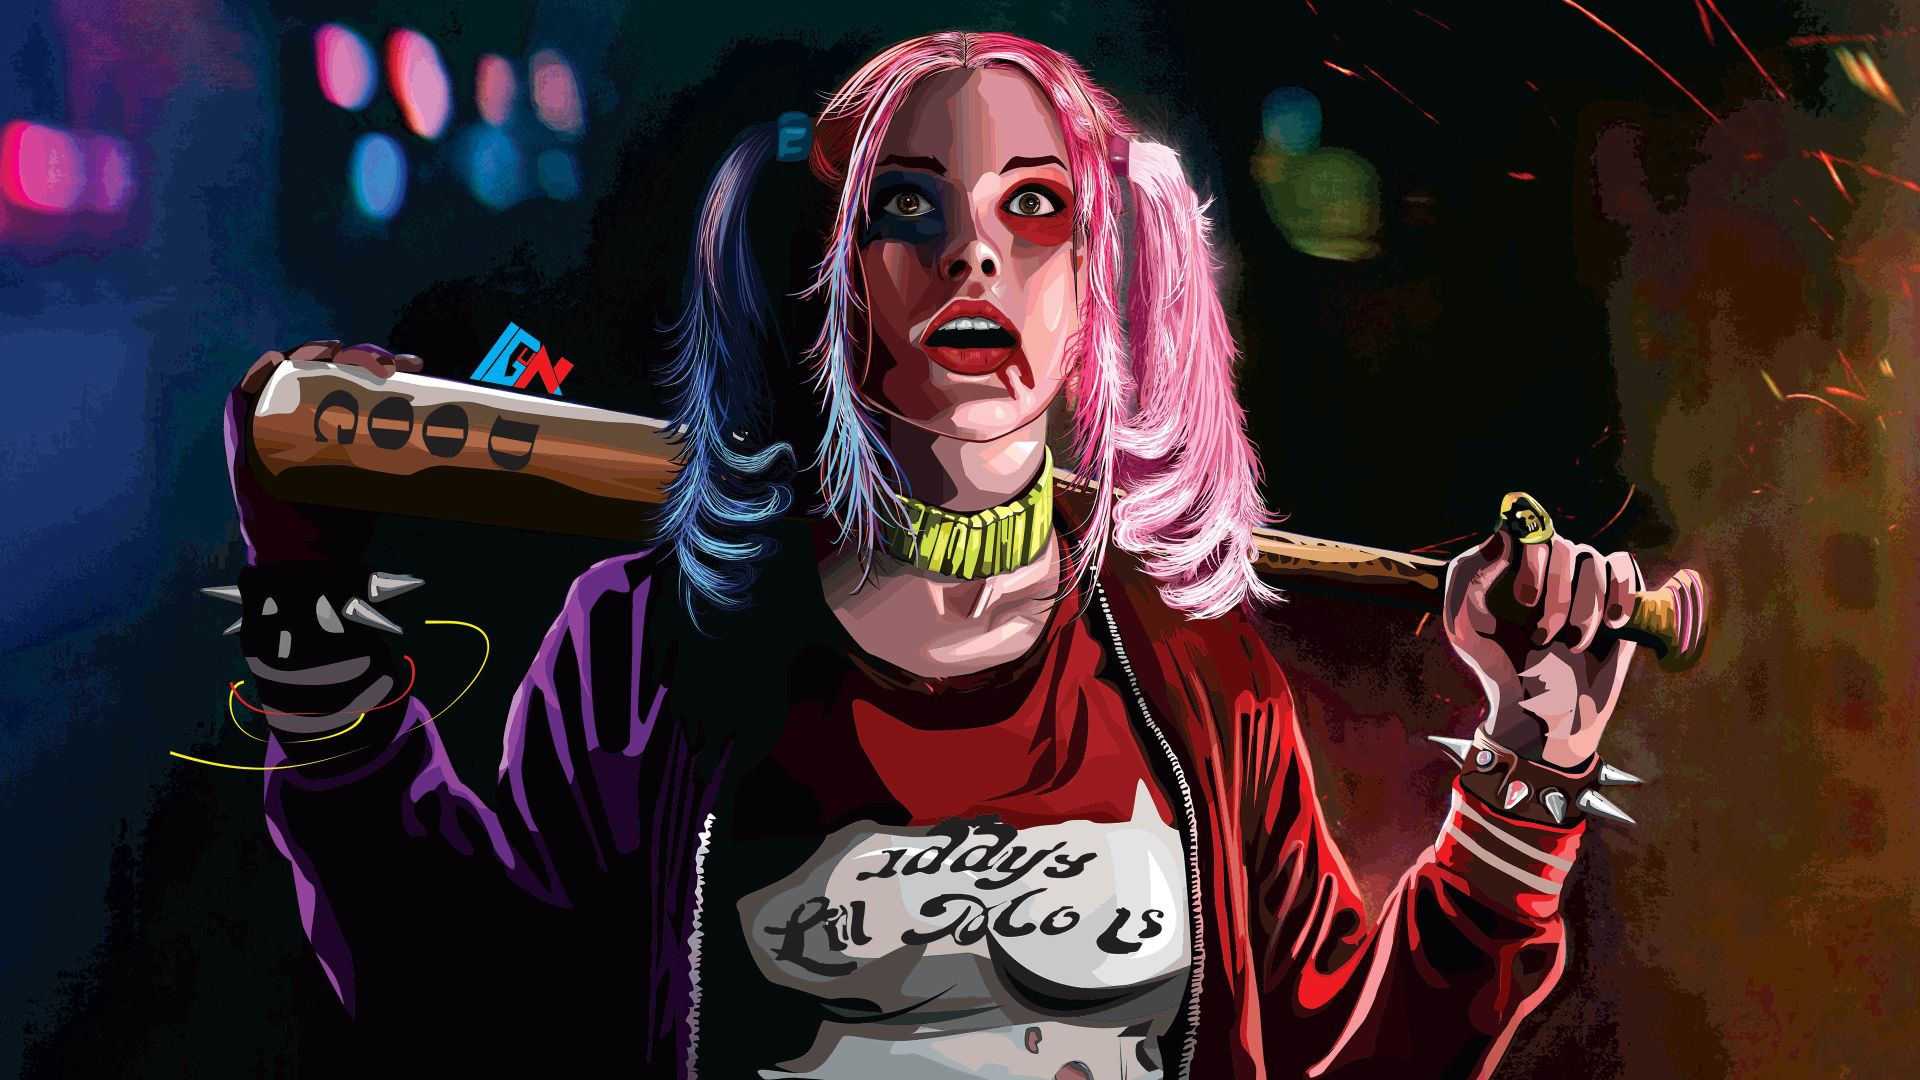 26 Suicide Squad Harley Quinn Wallpapers Wallpaperboat